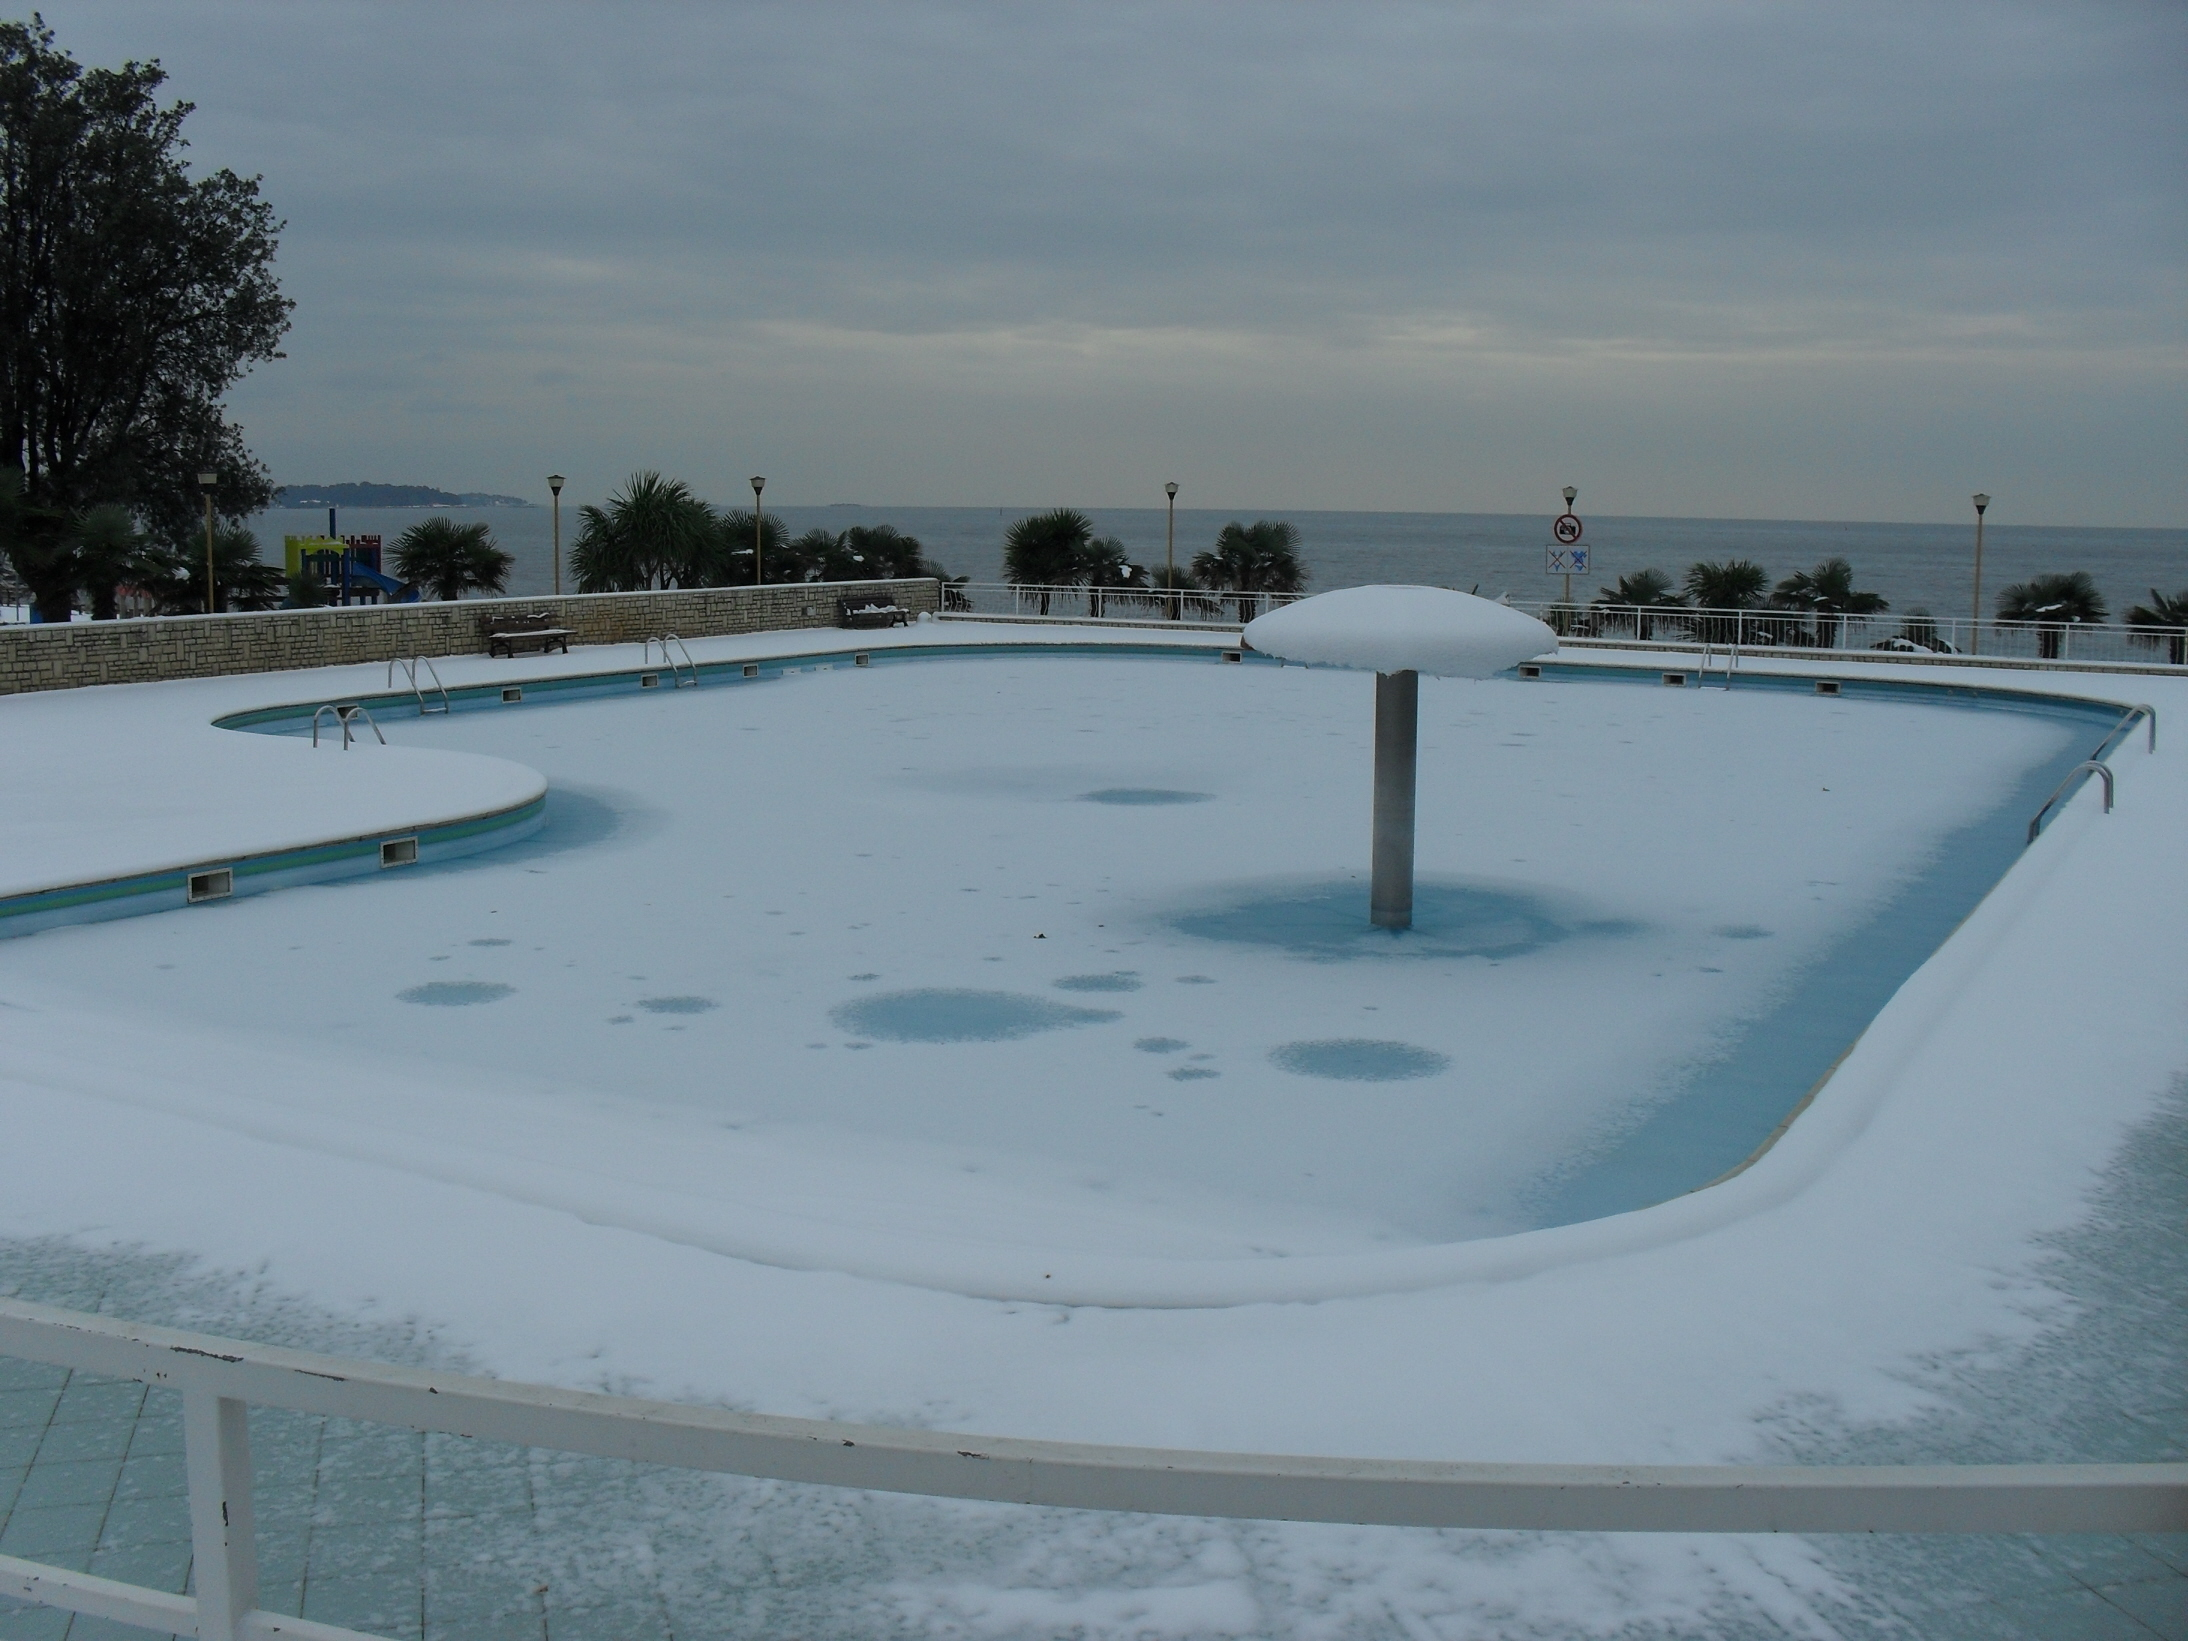 Pool Garten Winter File Snow In Poreč In The Pool The First Day Of Winter